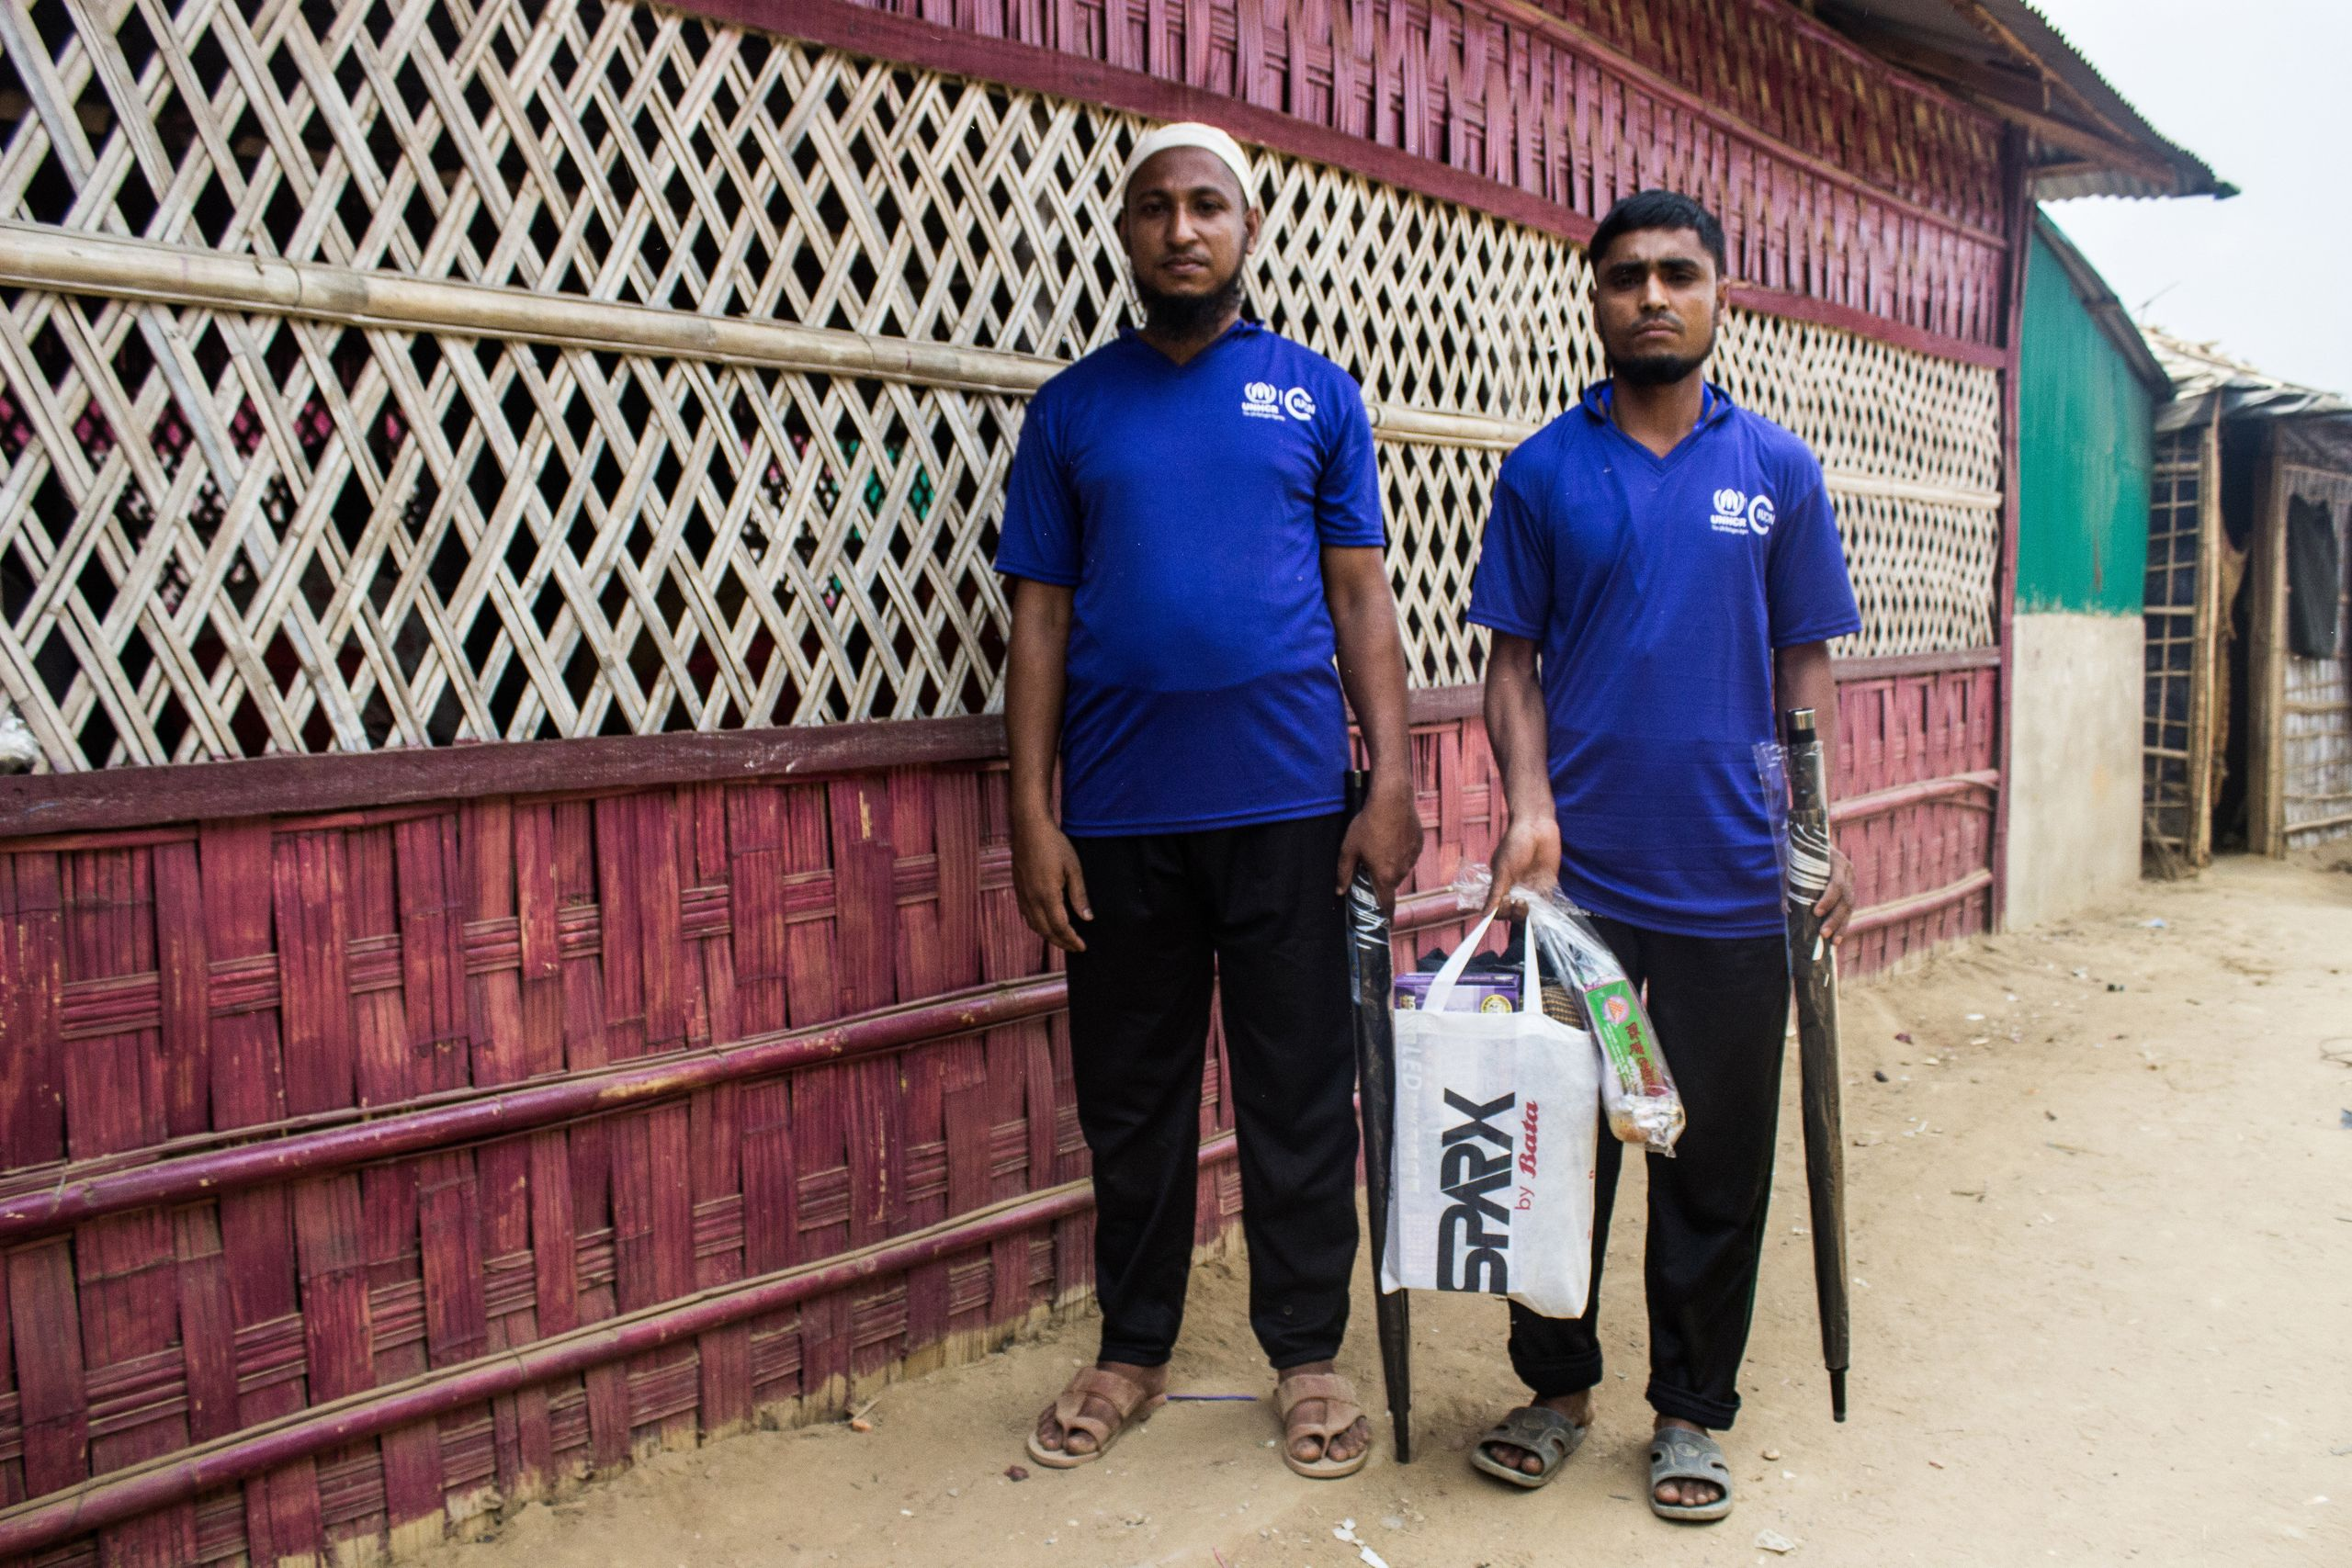 Elephant response team volunteers Jahid Hossain (left) and Mohammed Yahea (right) with equipment given to them by IUCN.